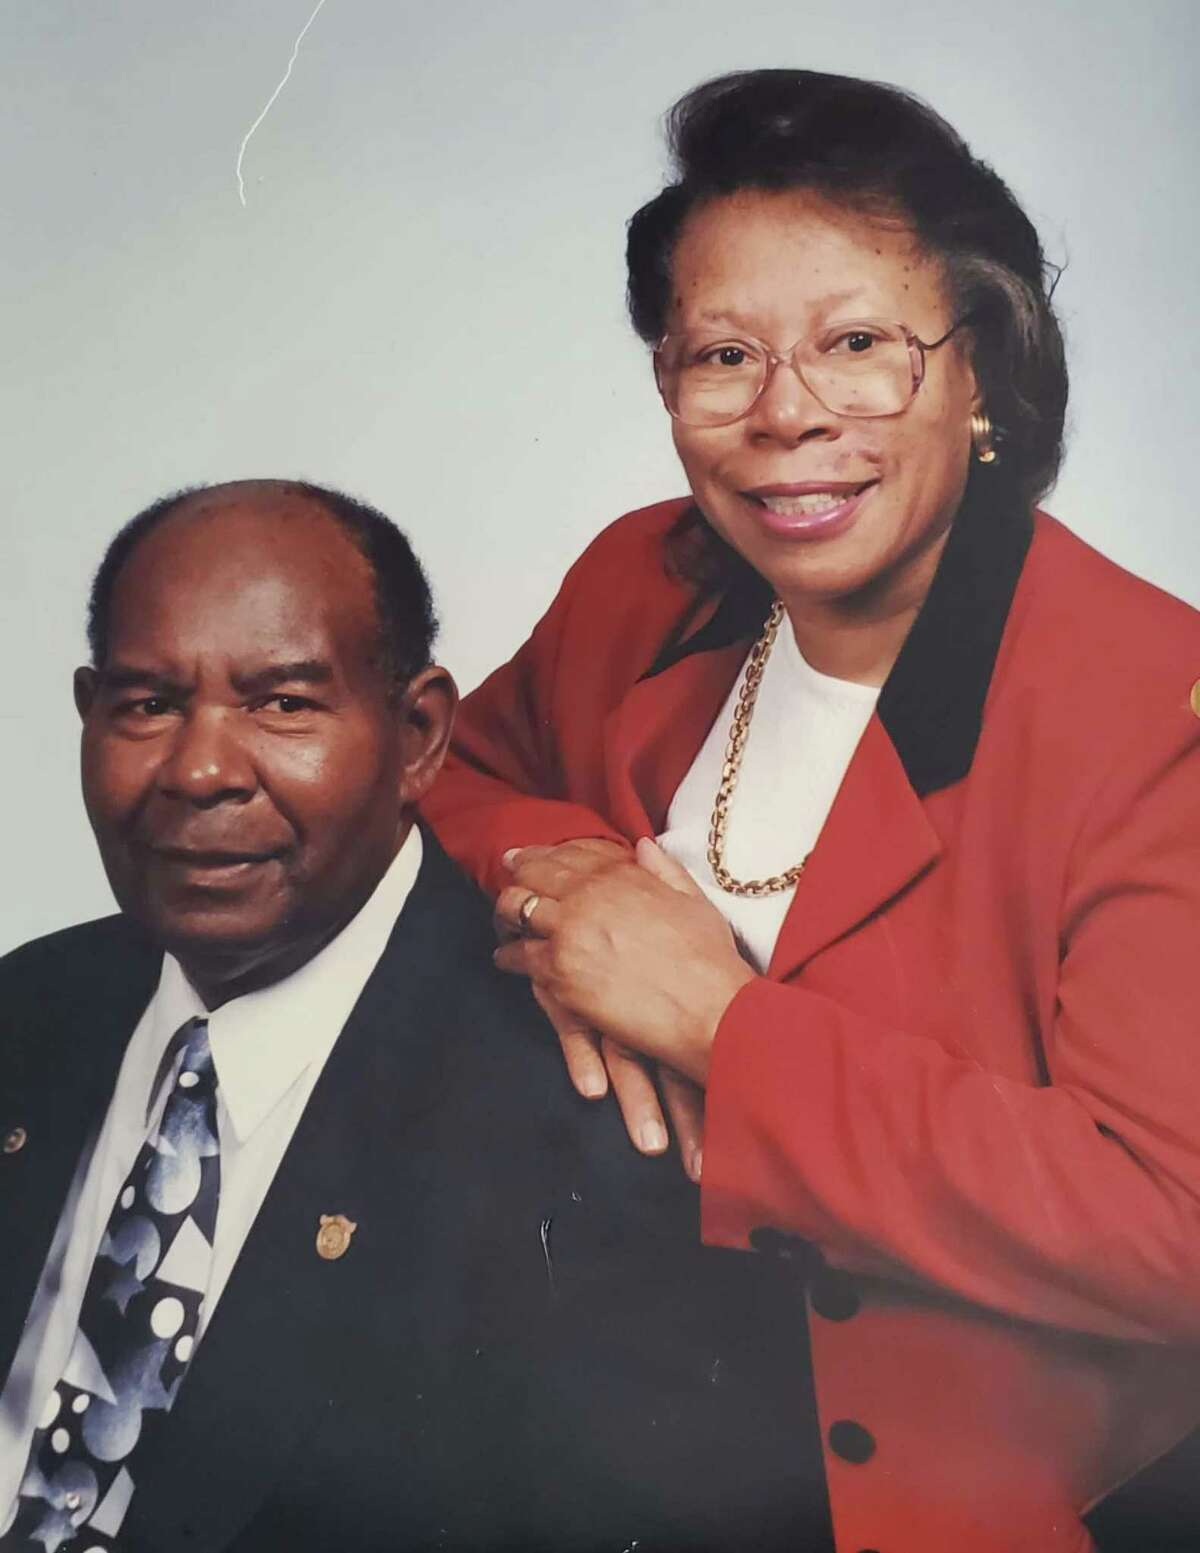 Spencer White Jr. and Beulah White, Carl White's parents. Spencer White Jr. was the first Black deputy constable for the Montgomery County Sheriff's Office in the early 1980s.